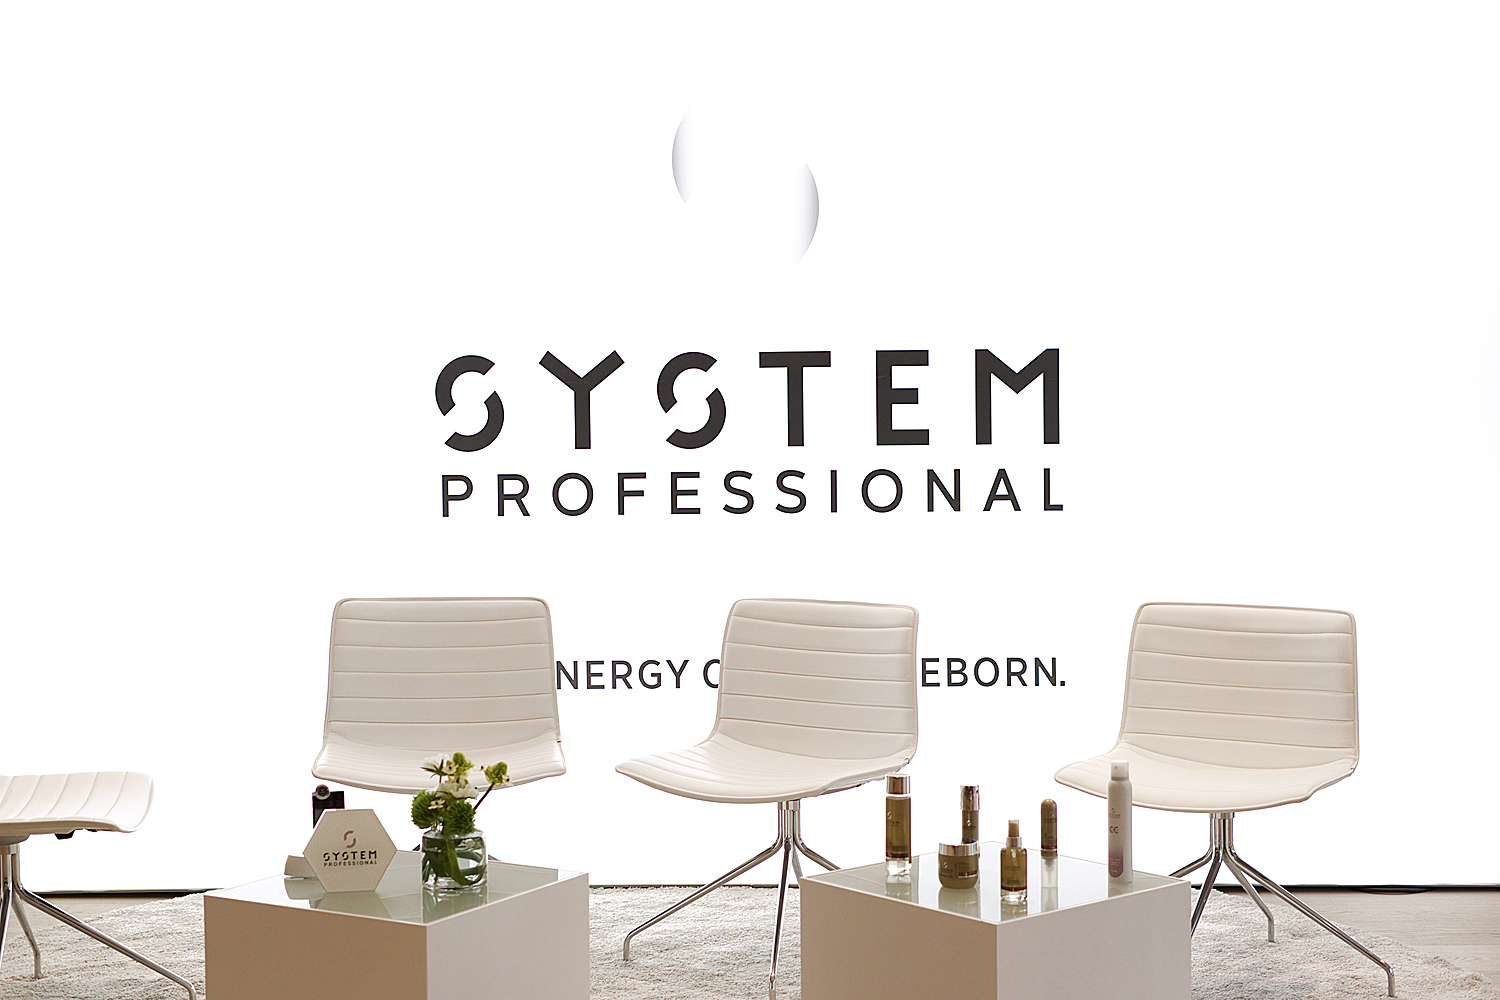 01systemprofessional-germany-beauty-hair-event-travel